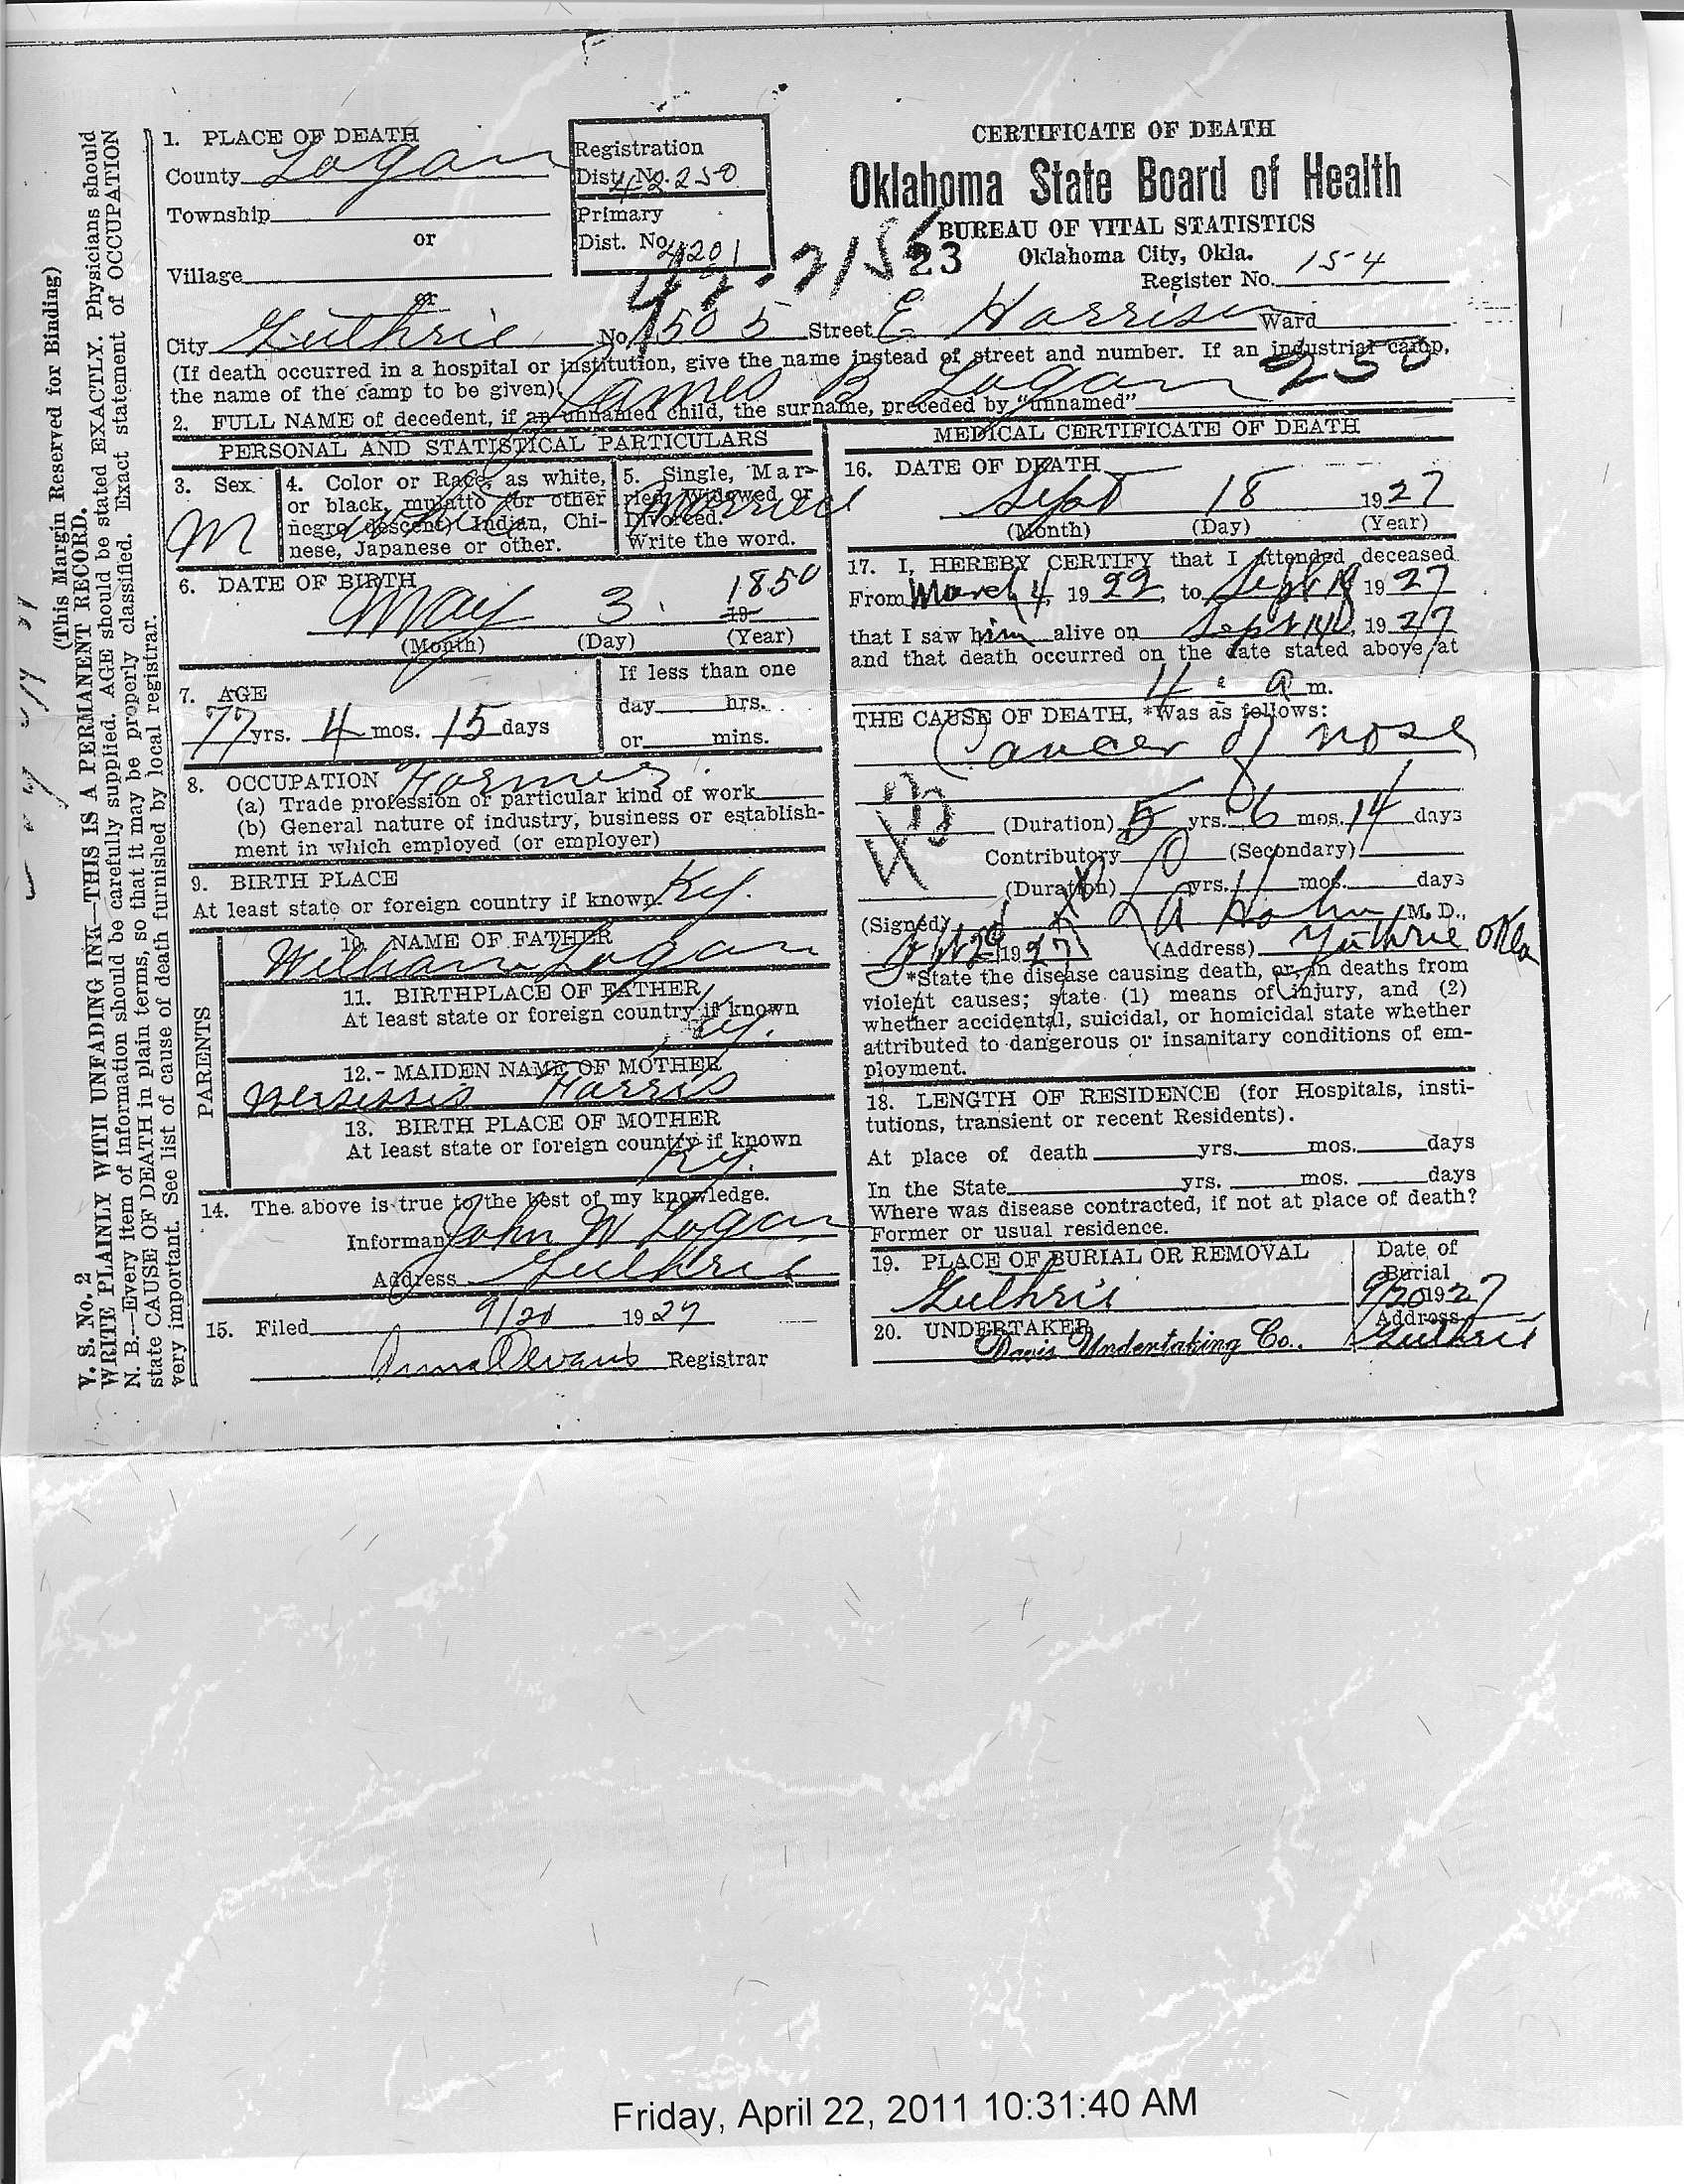 Speaking of family death certificate of james b logan oklahoma death certificate of james b logan oklahoma 1betcityfo Images